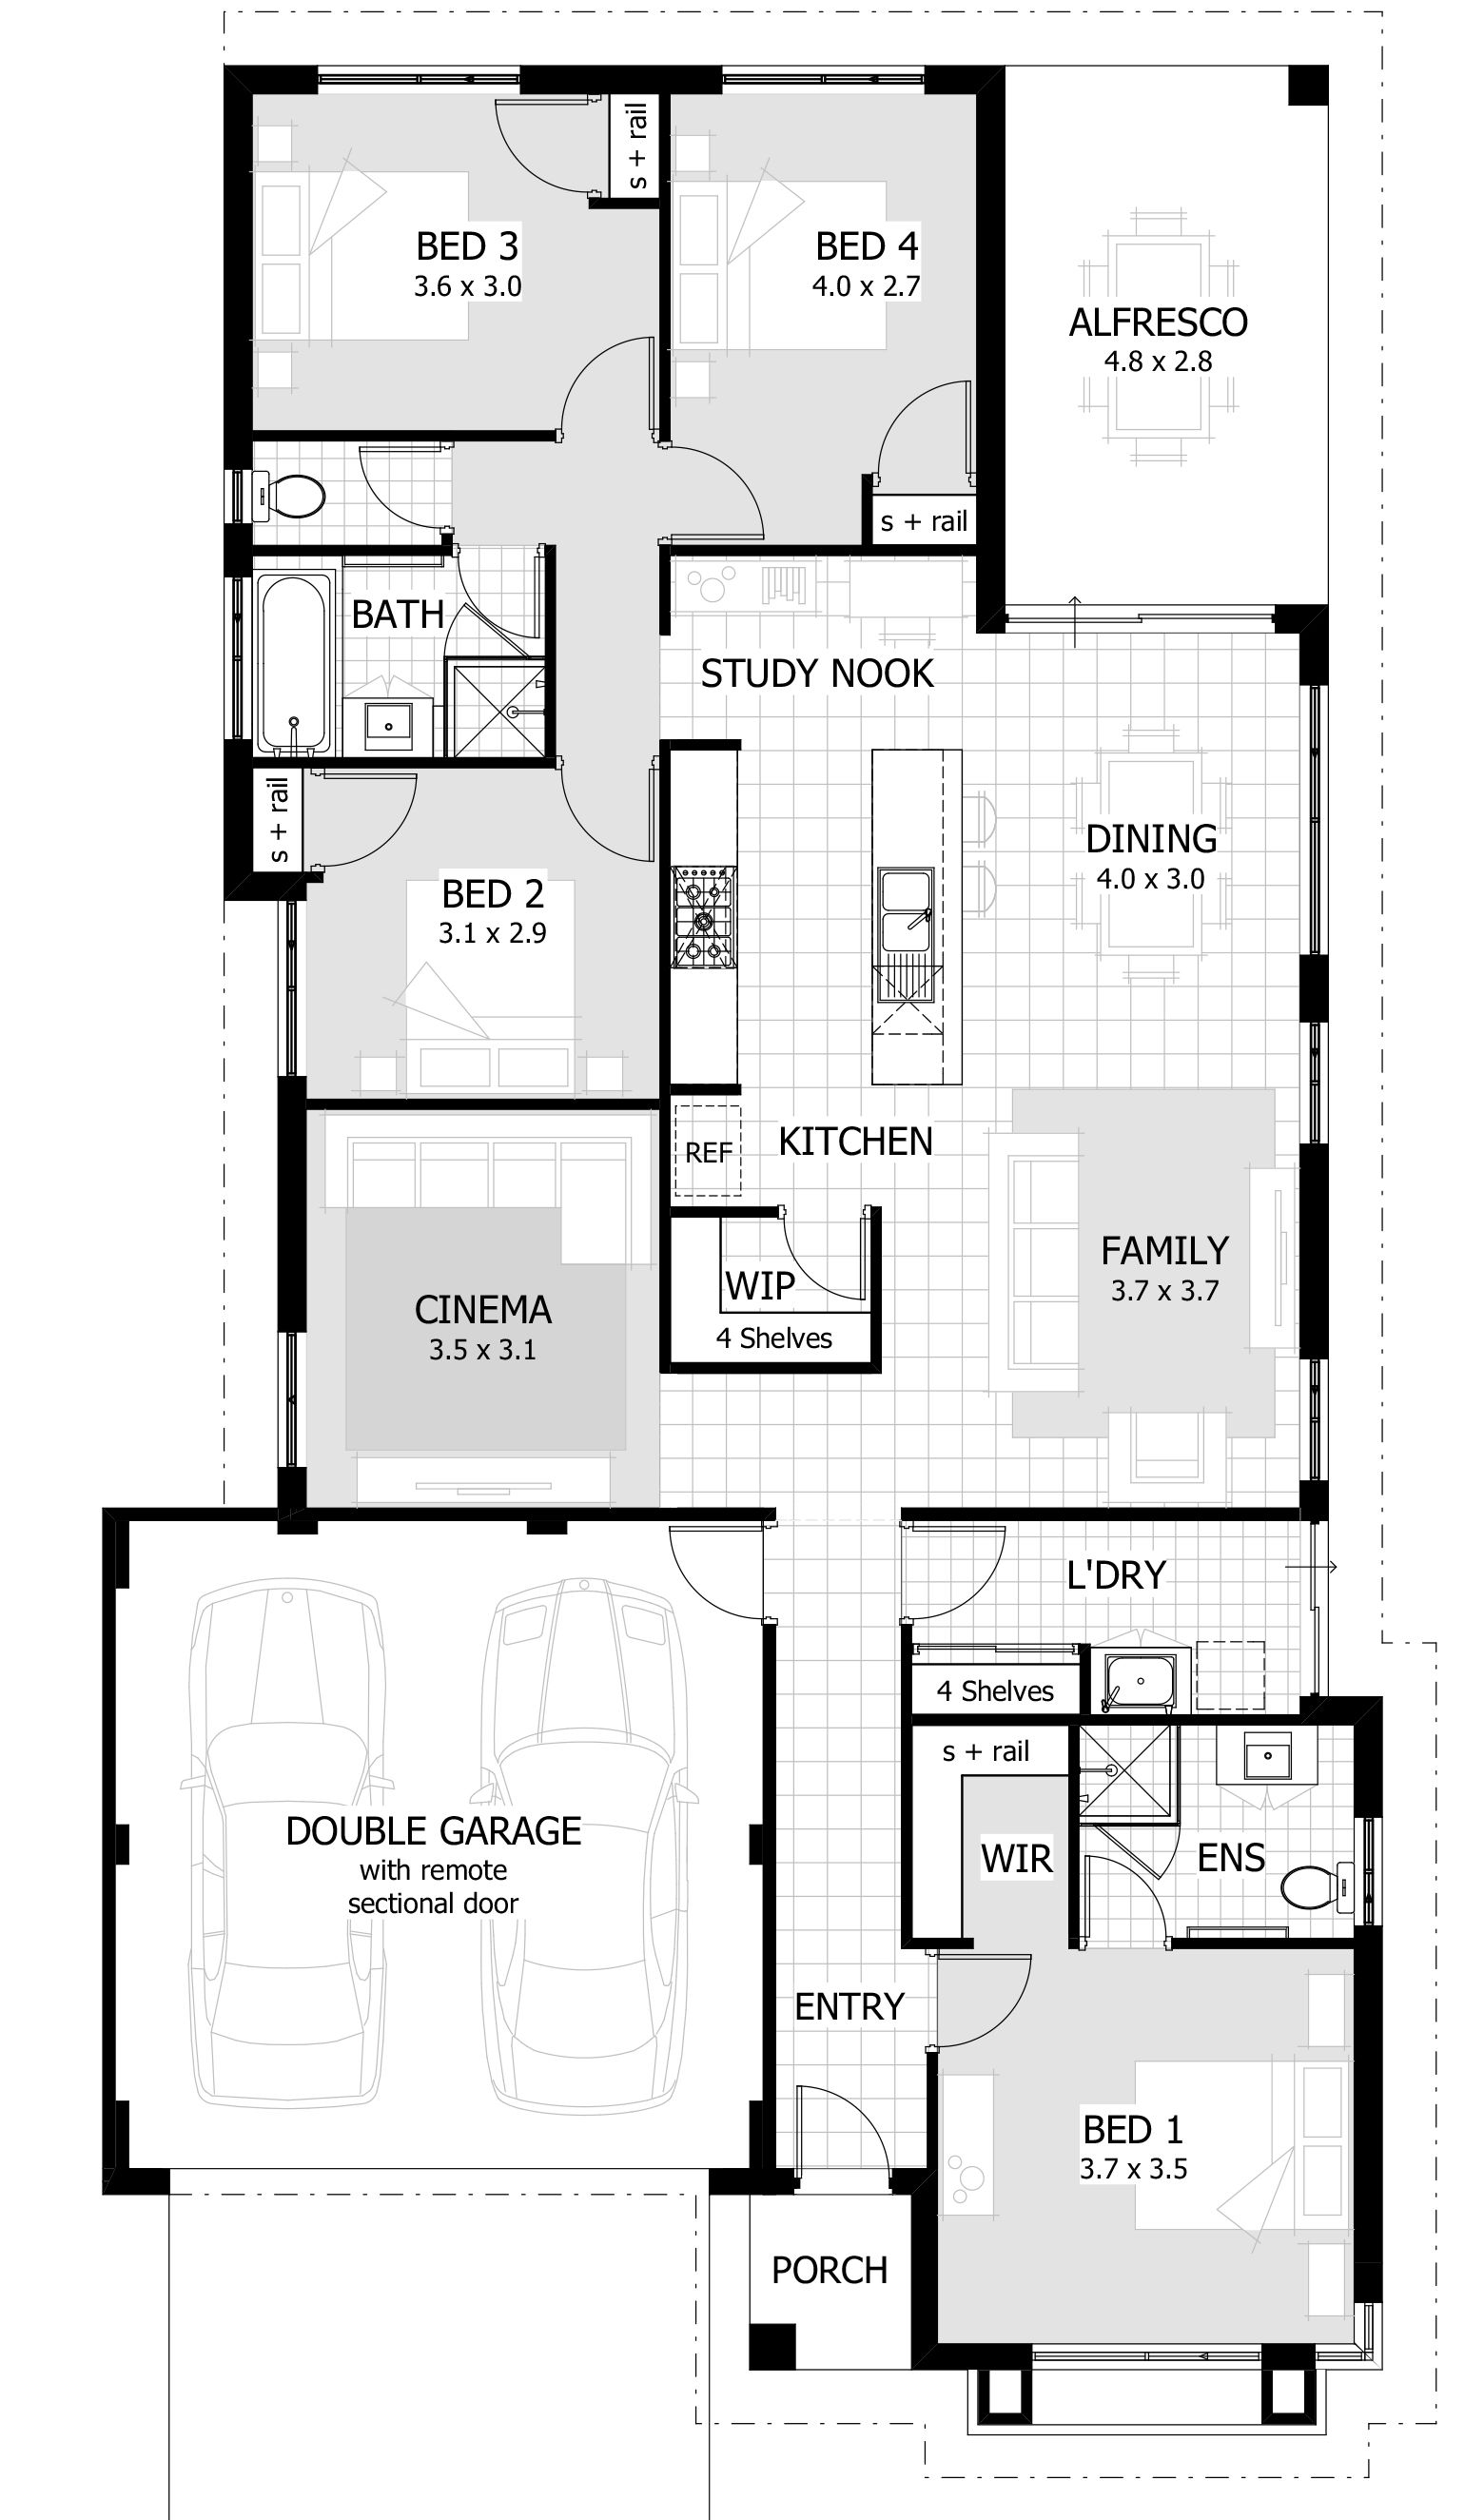 5 Bedroom Home Designs Find A 4 Bedroom Home That's Right For You From Our Current Range